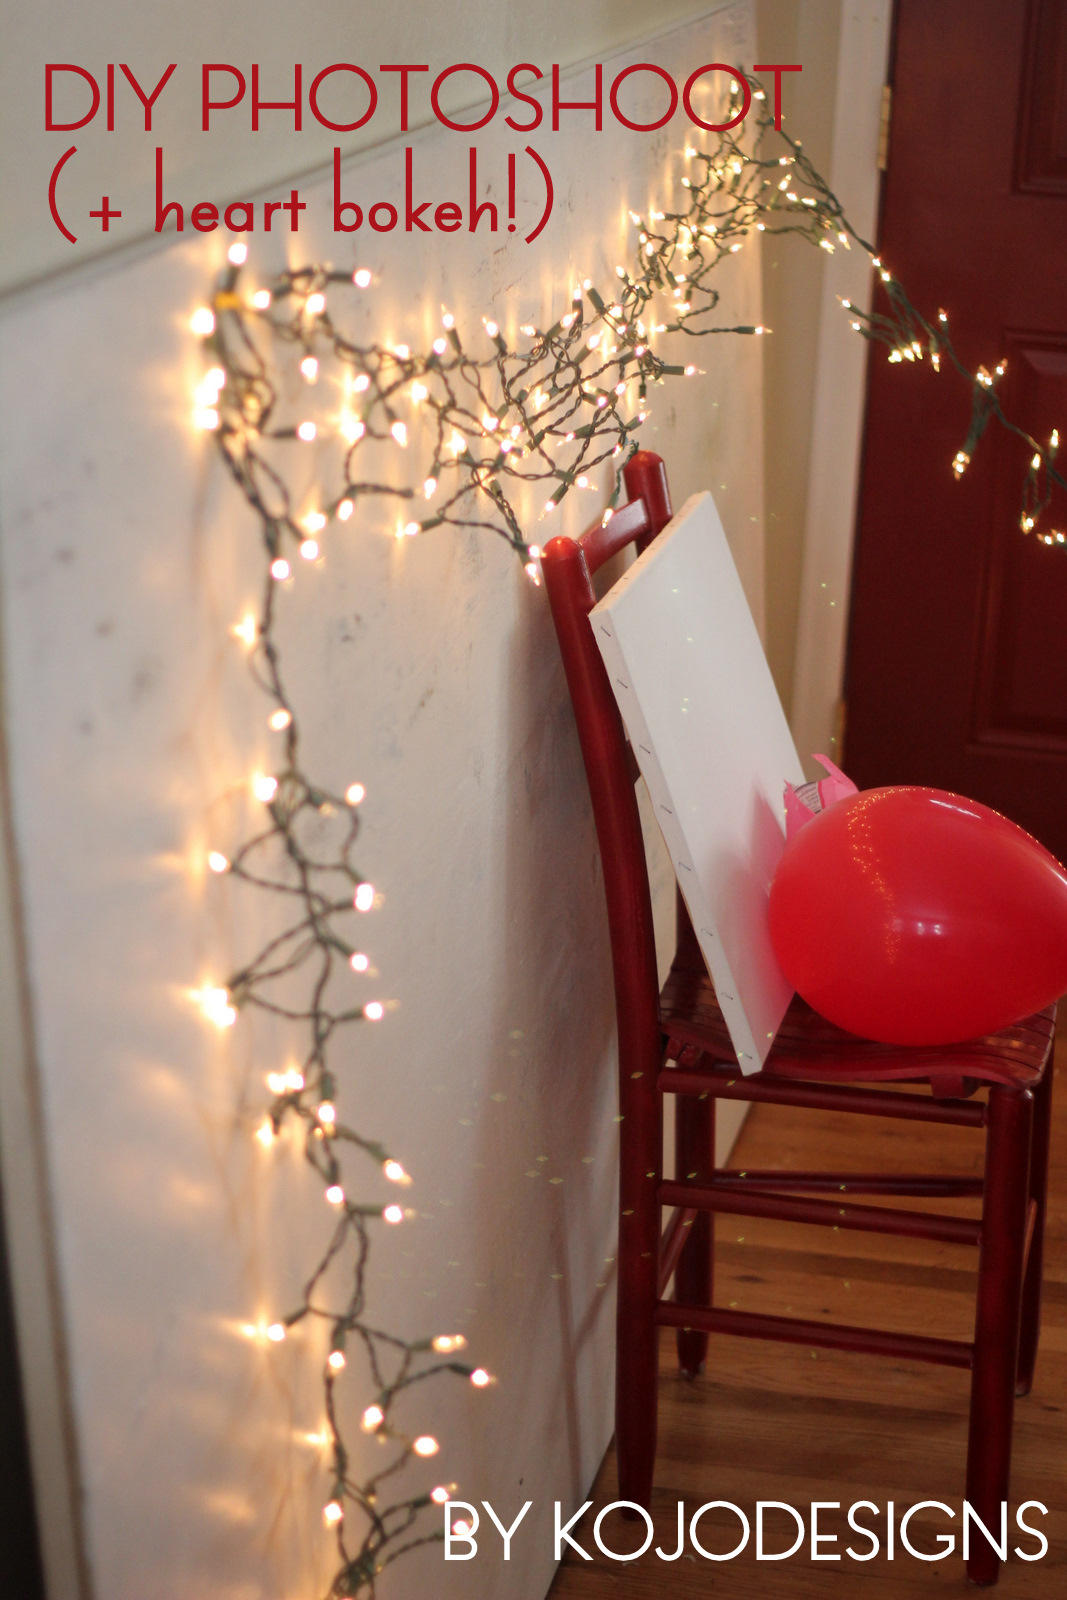 DIY photoshoot backdrop and props… and heart bokeh!